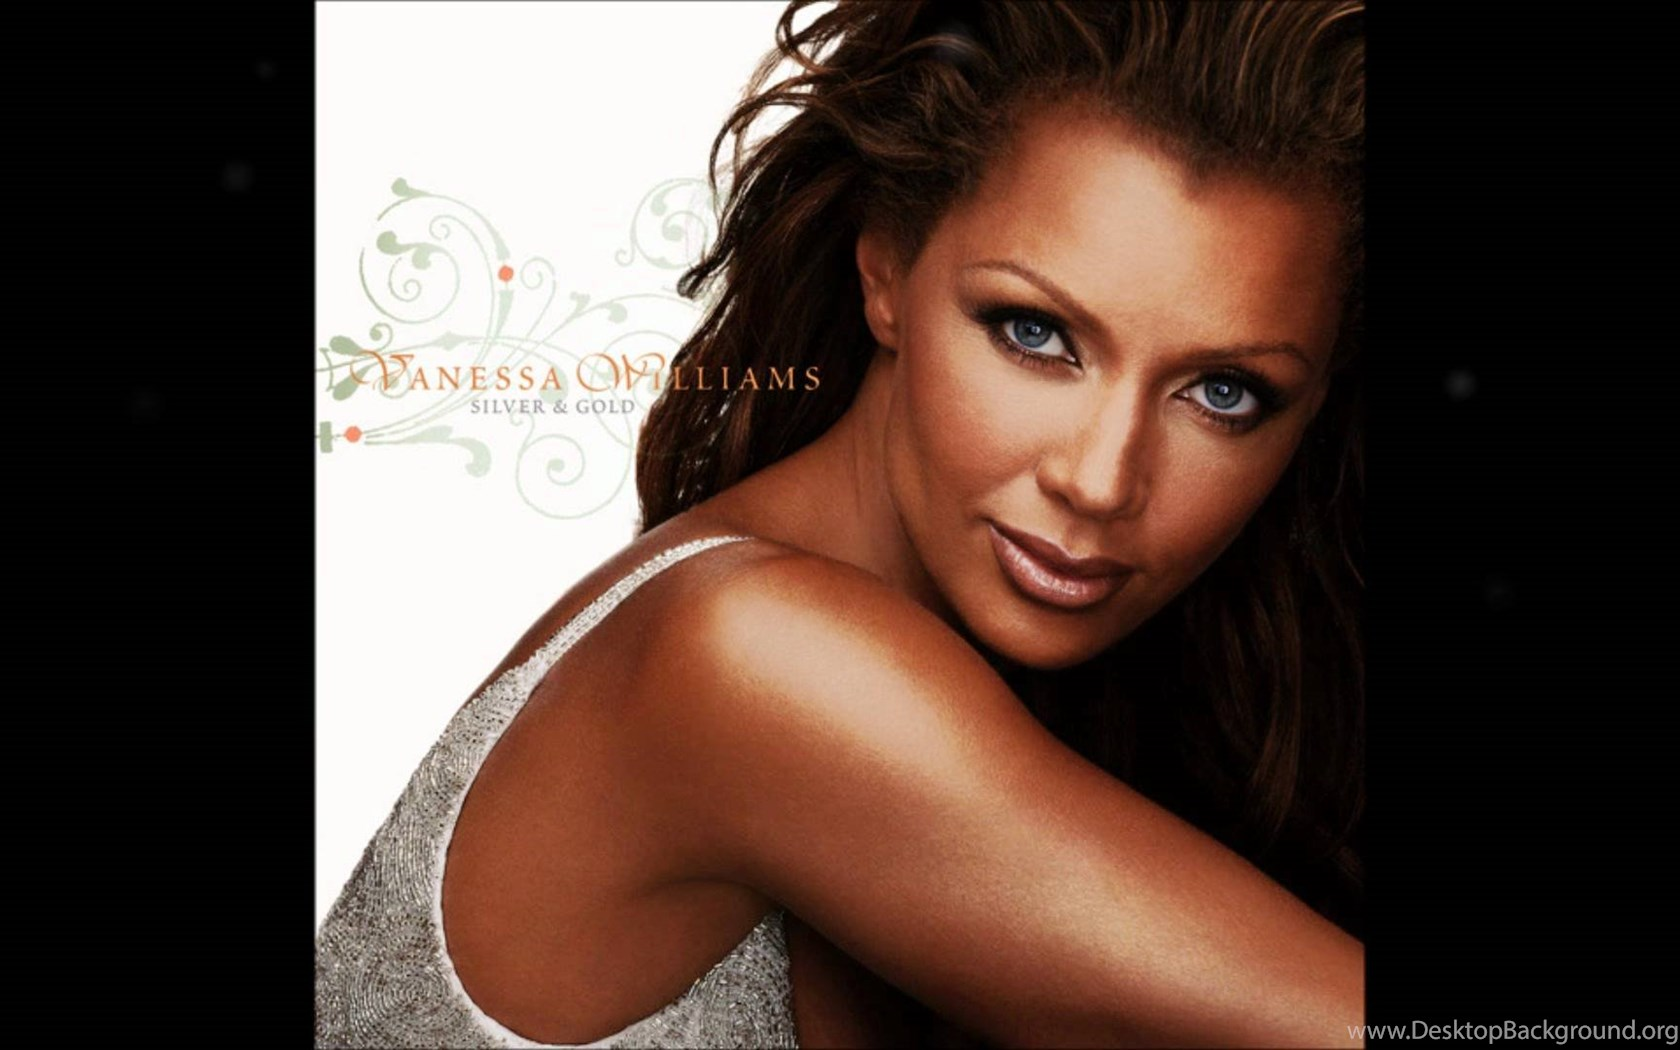 Vanessa Williams Have Yourself A Merry Little Christmas YouTube ...